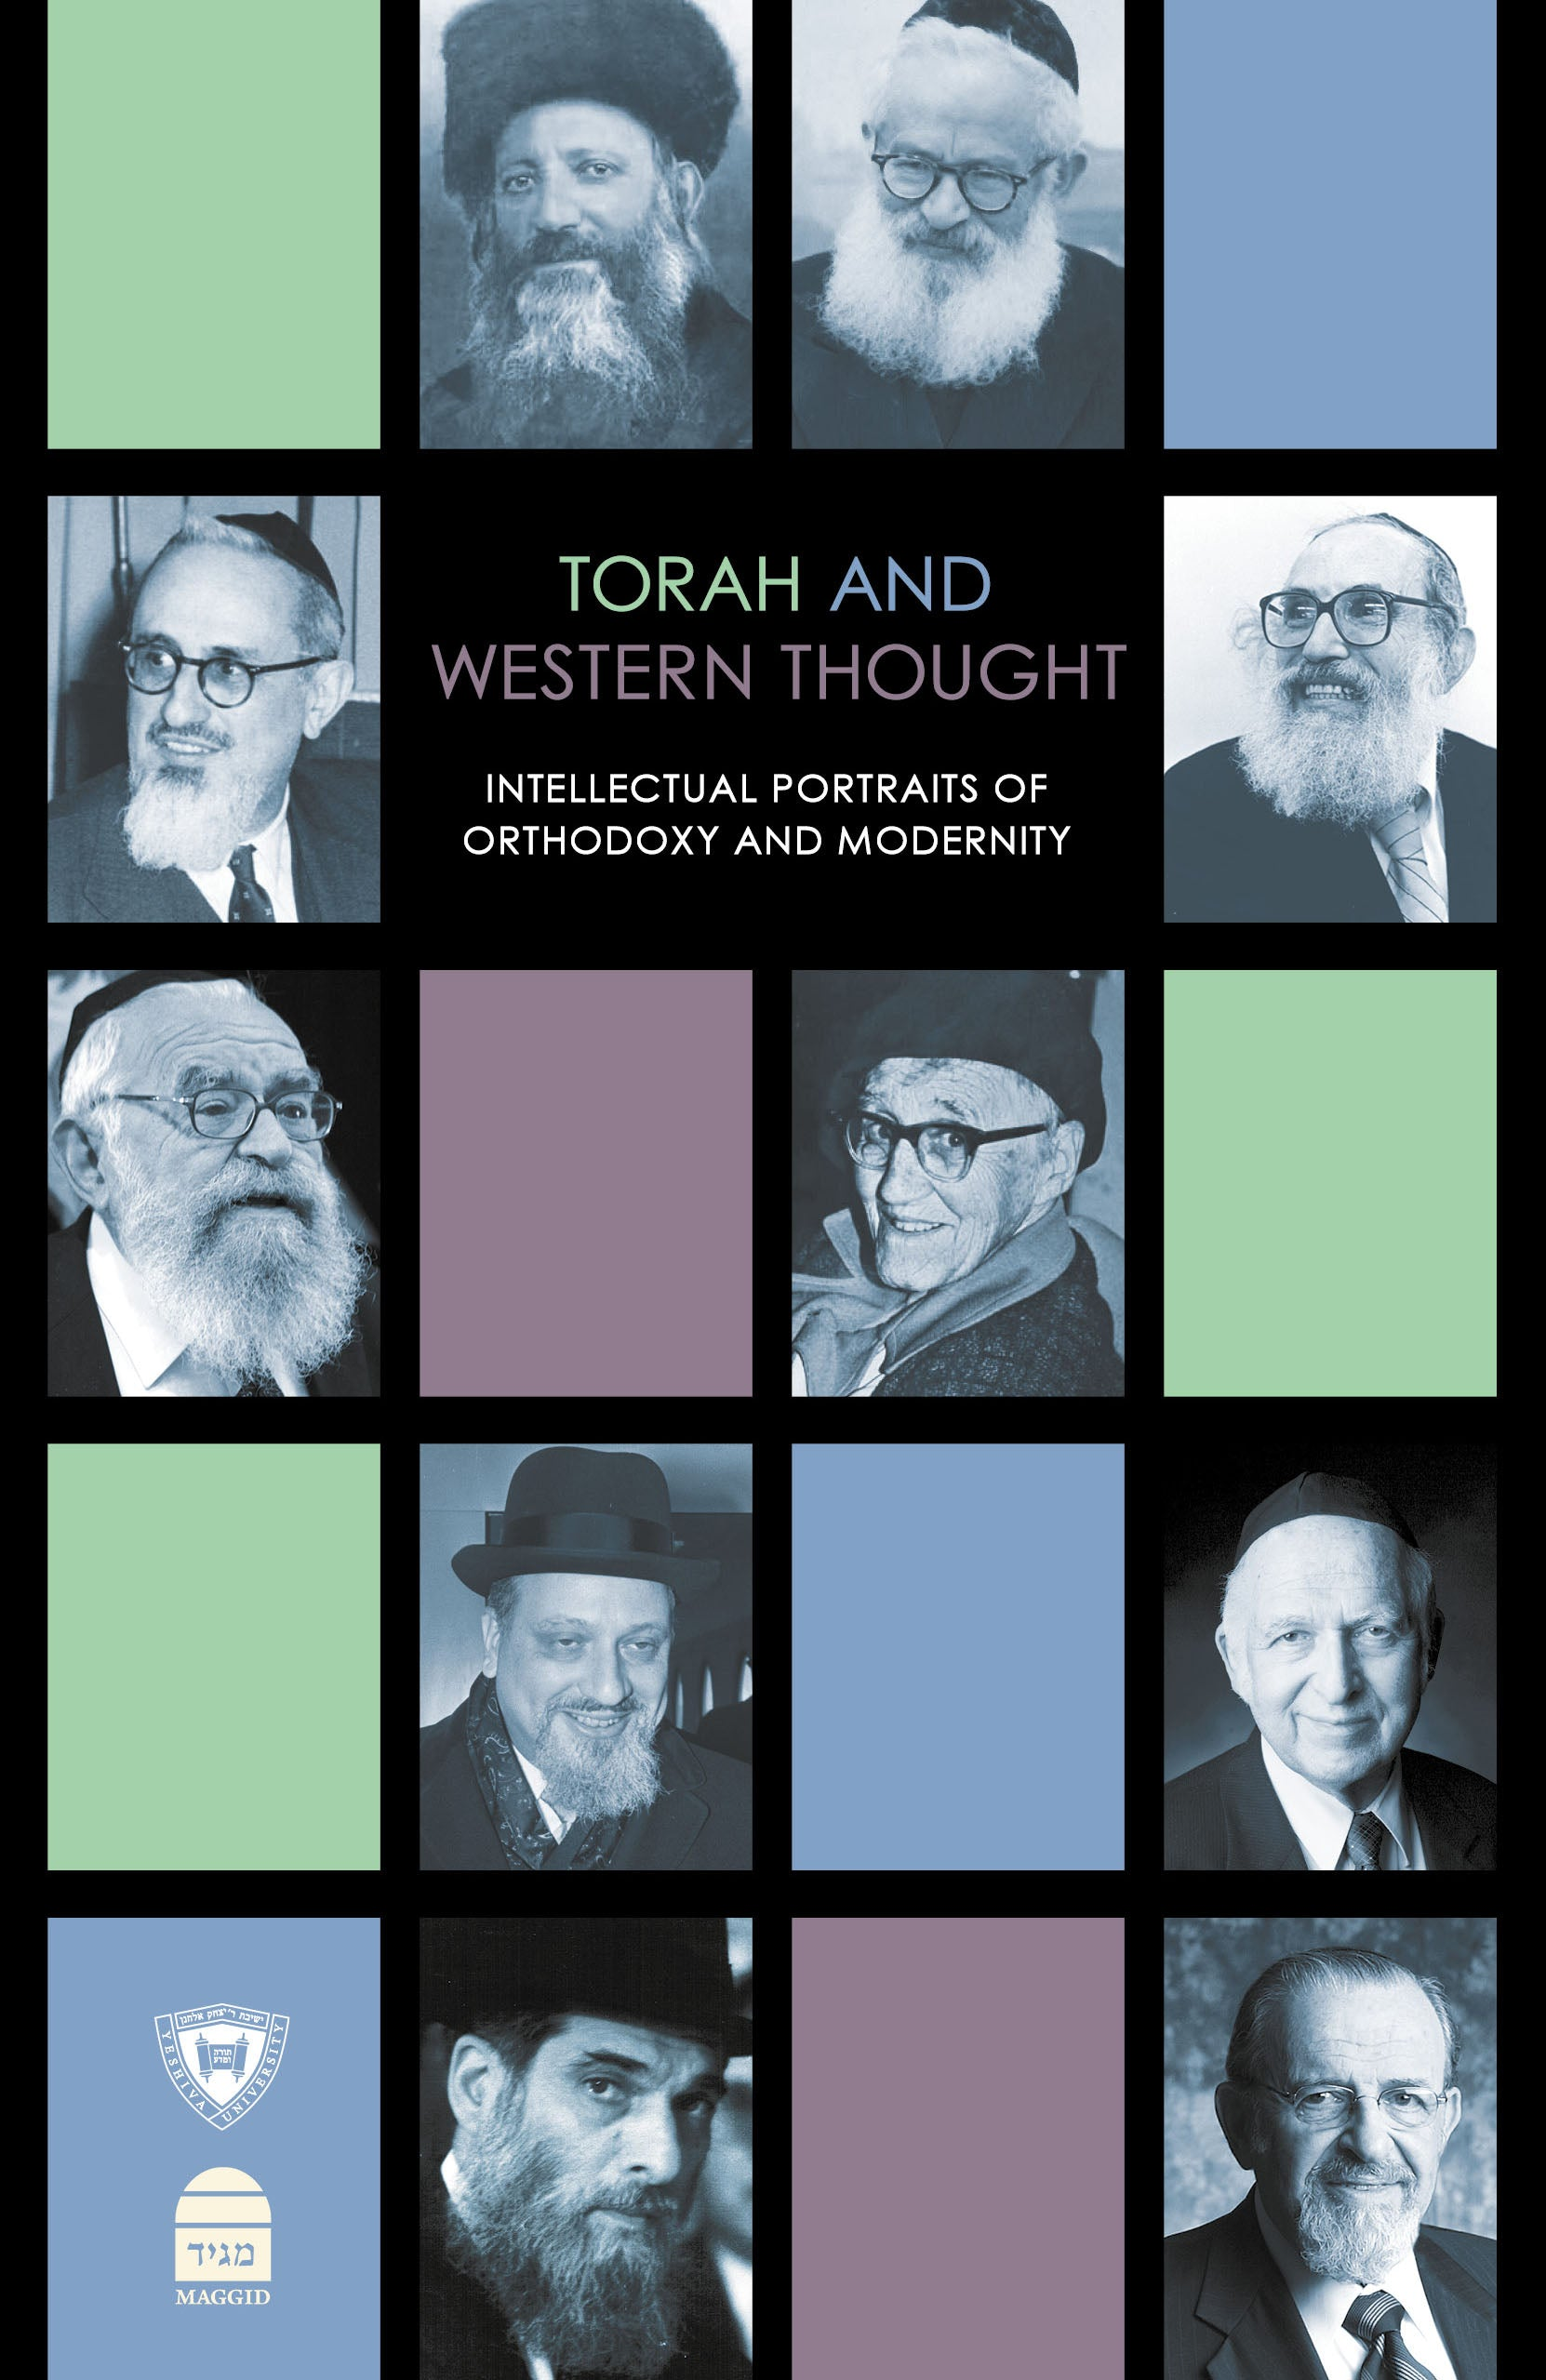 Torah and Western thought 2D